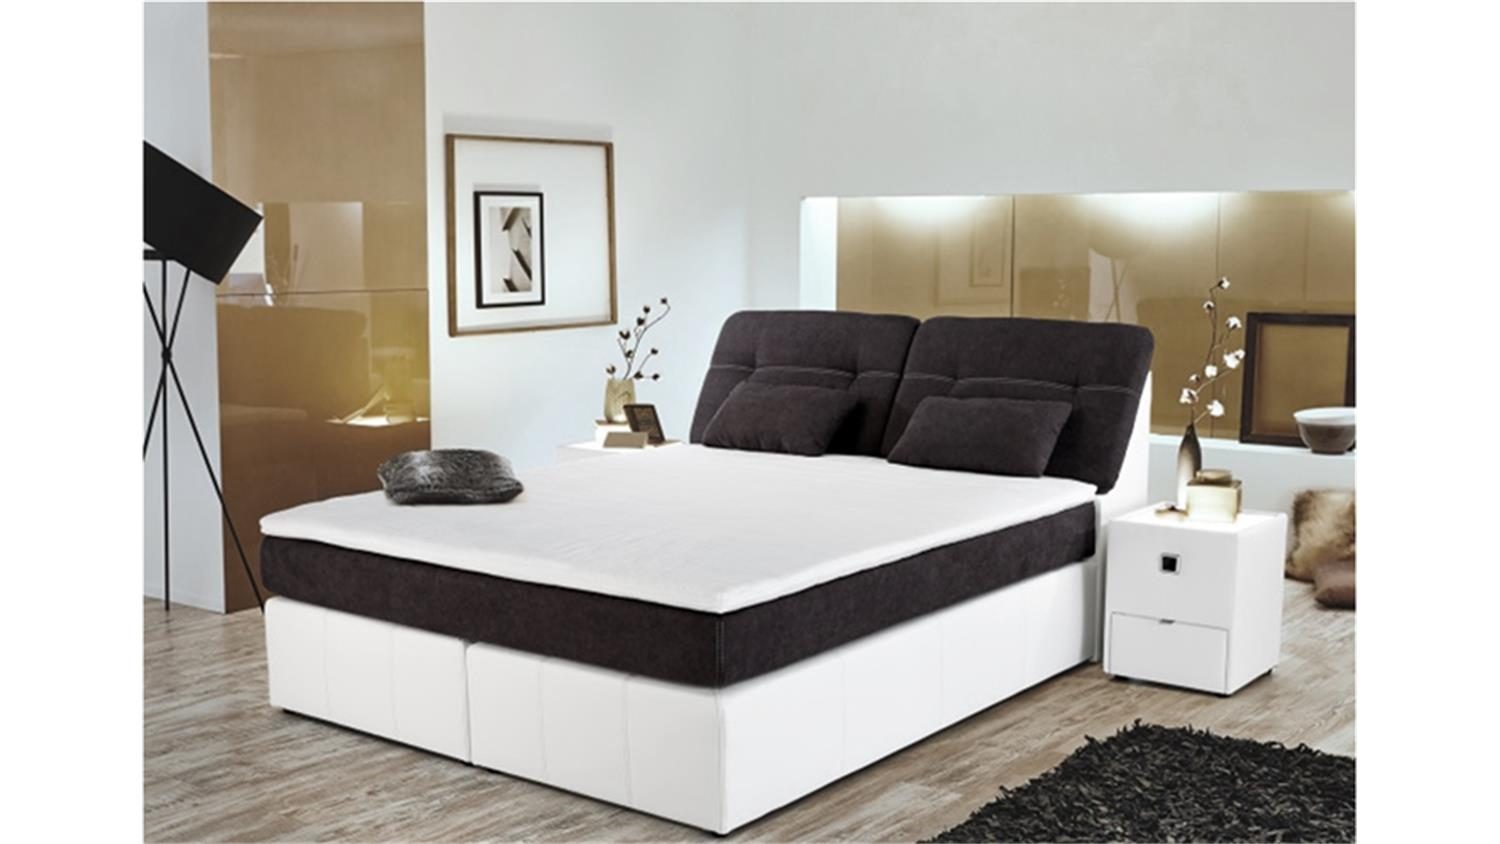 boxspringbett vicky bett schlafzimmerbett in grau wei 180x200 cm. Black Bedroom Furniture Sets. Home Design Ideas